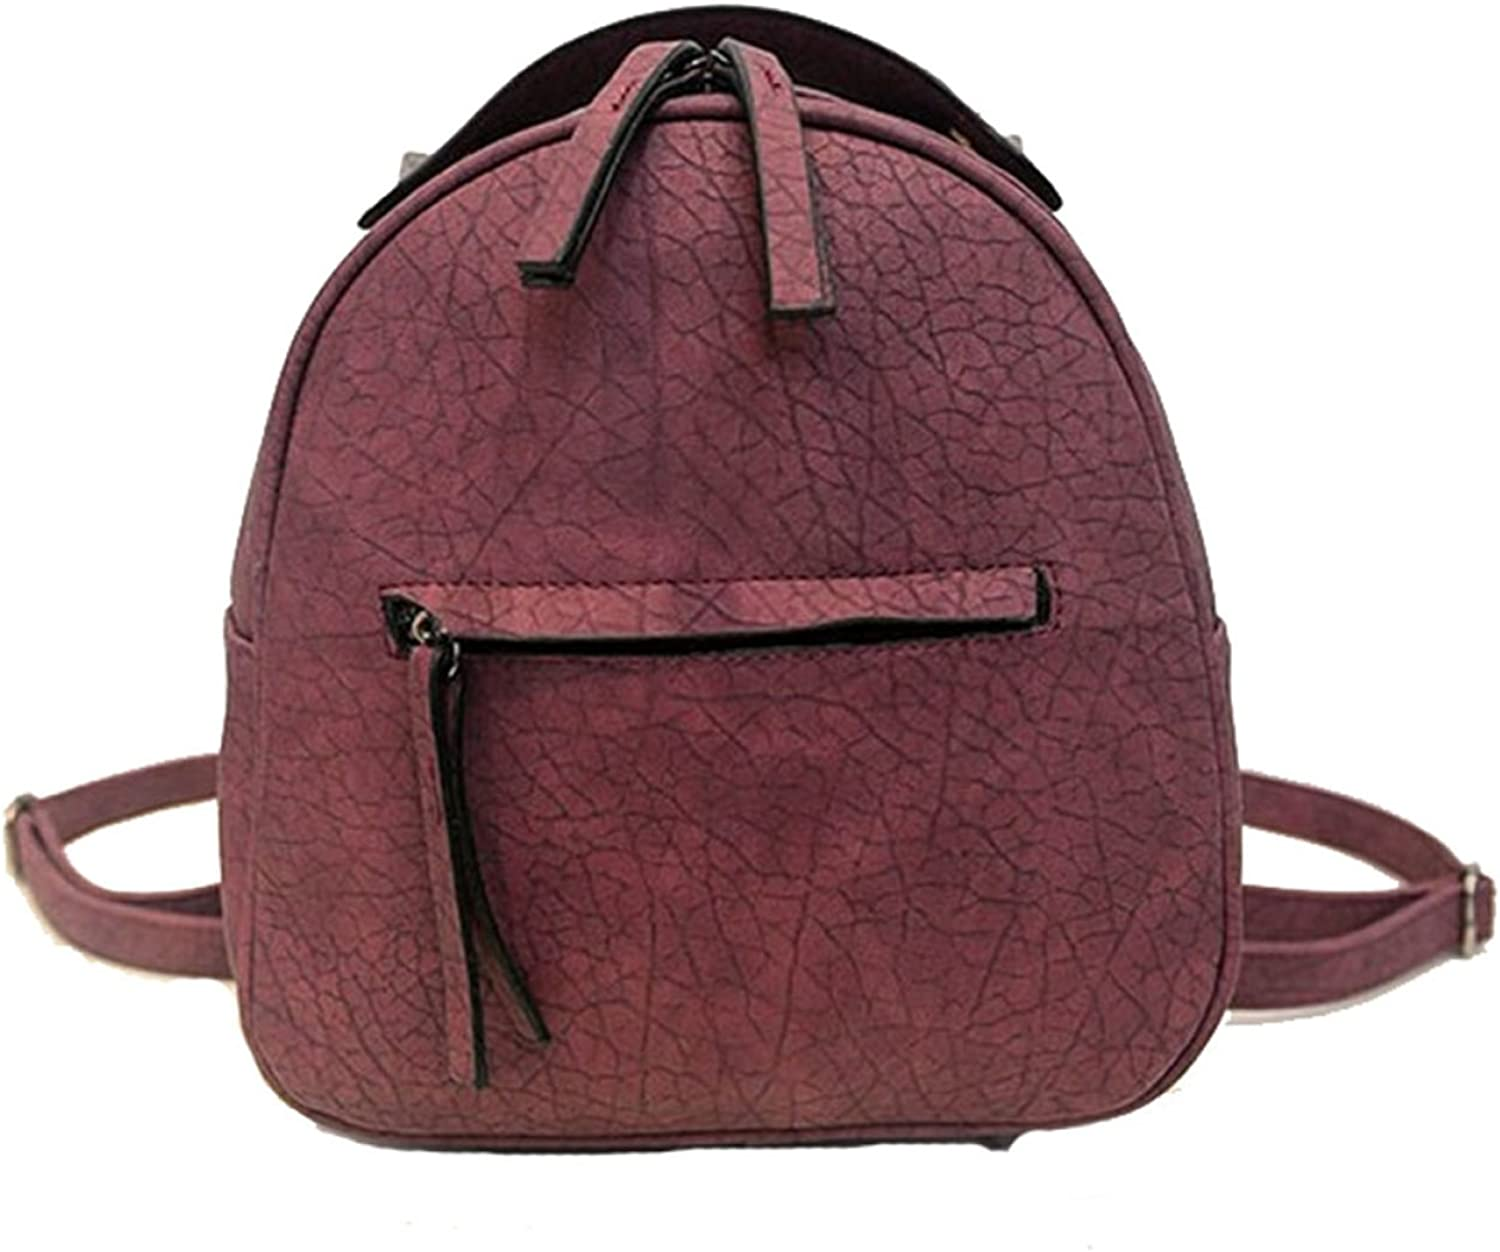 Ms. Students Backpack, Size 23  9  24cm,23924Winered